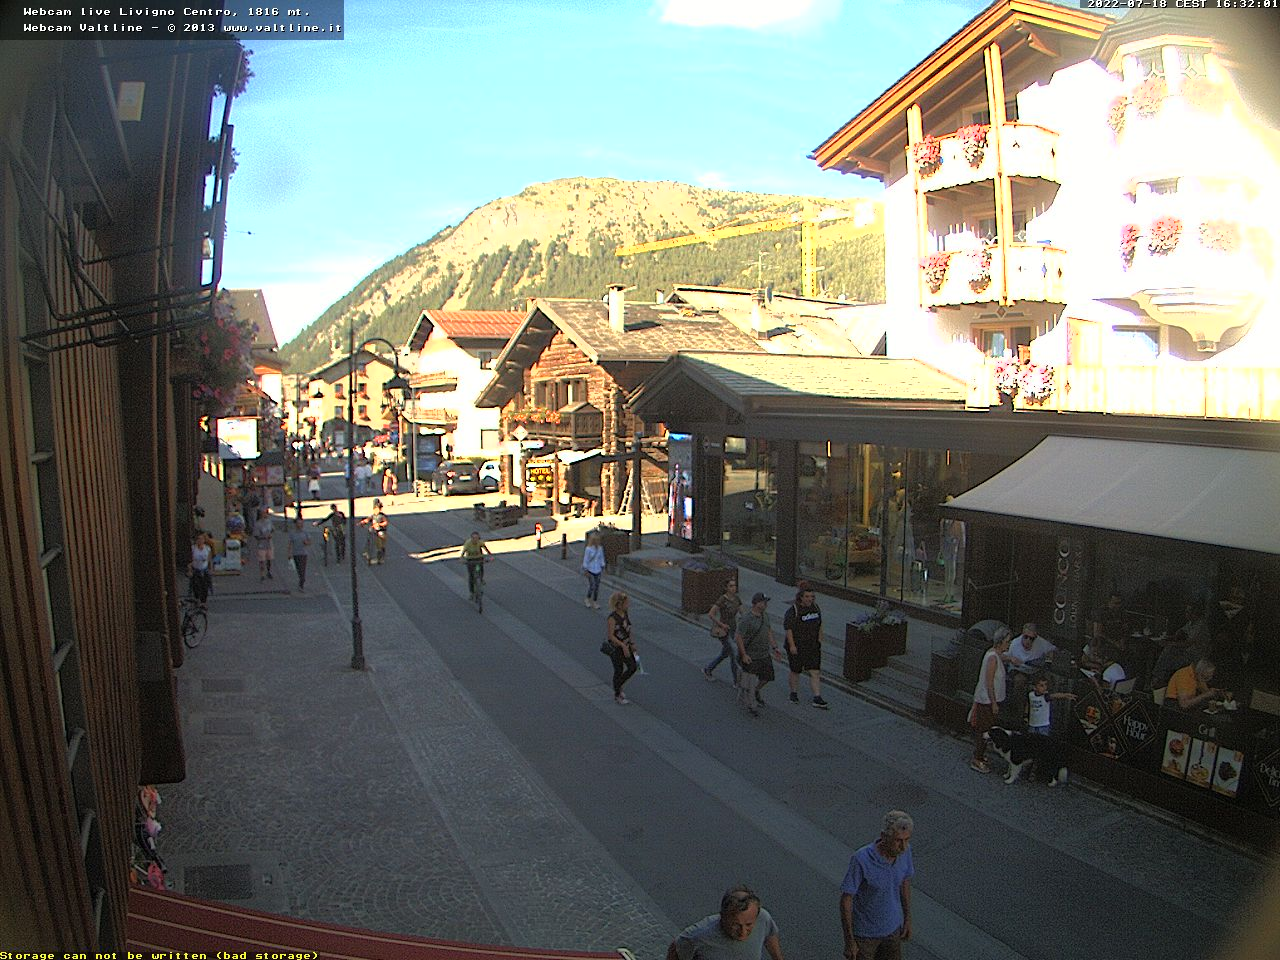 Webcam a Livigno (SO)